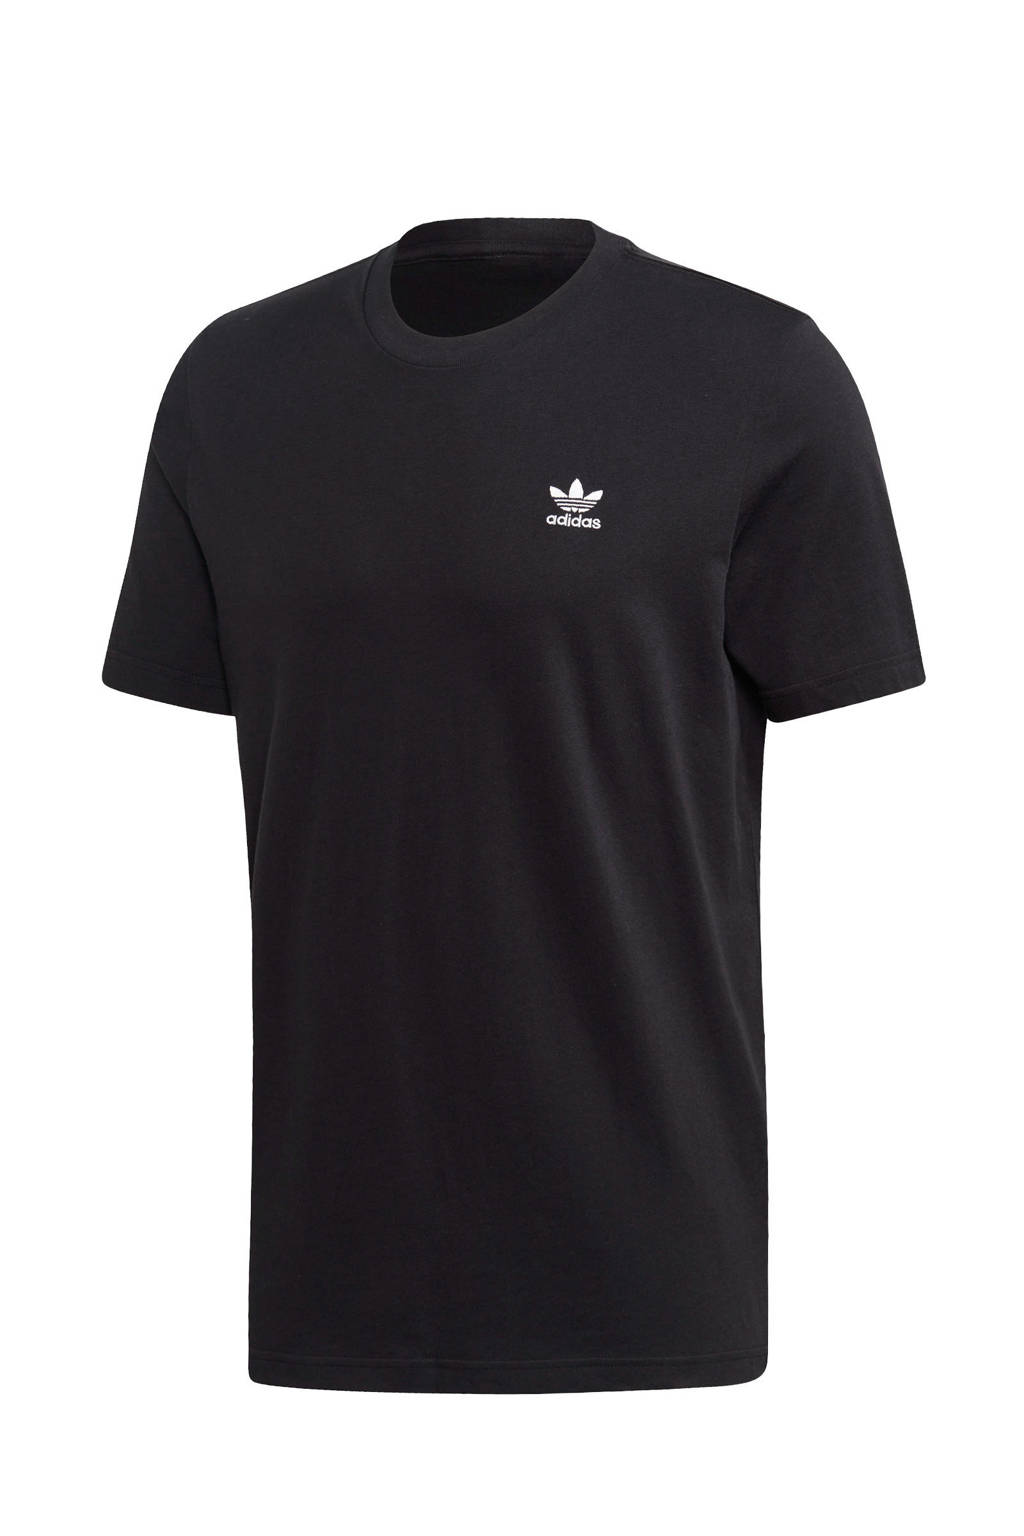 adidas Originals   Adicolor T-shirt zwart, Zwart